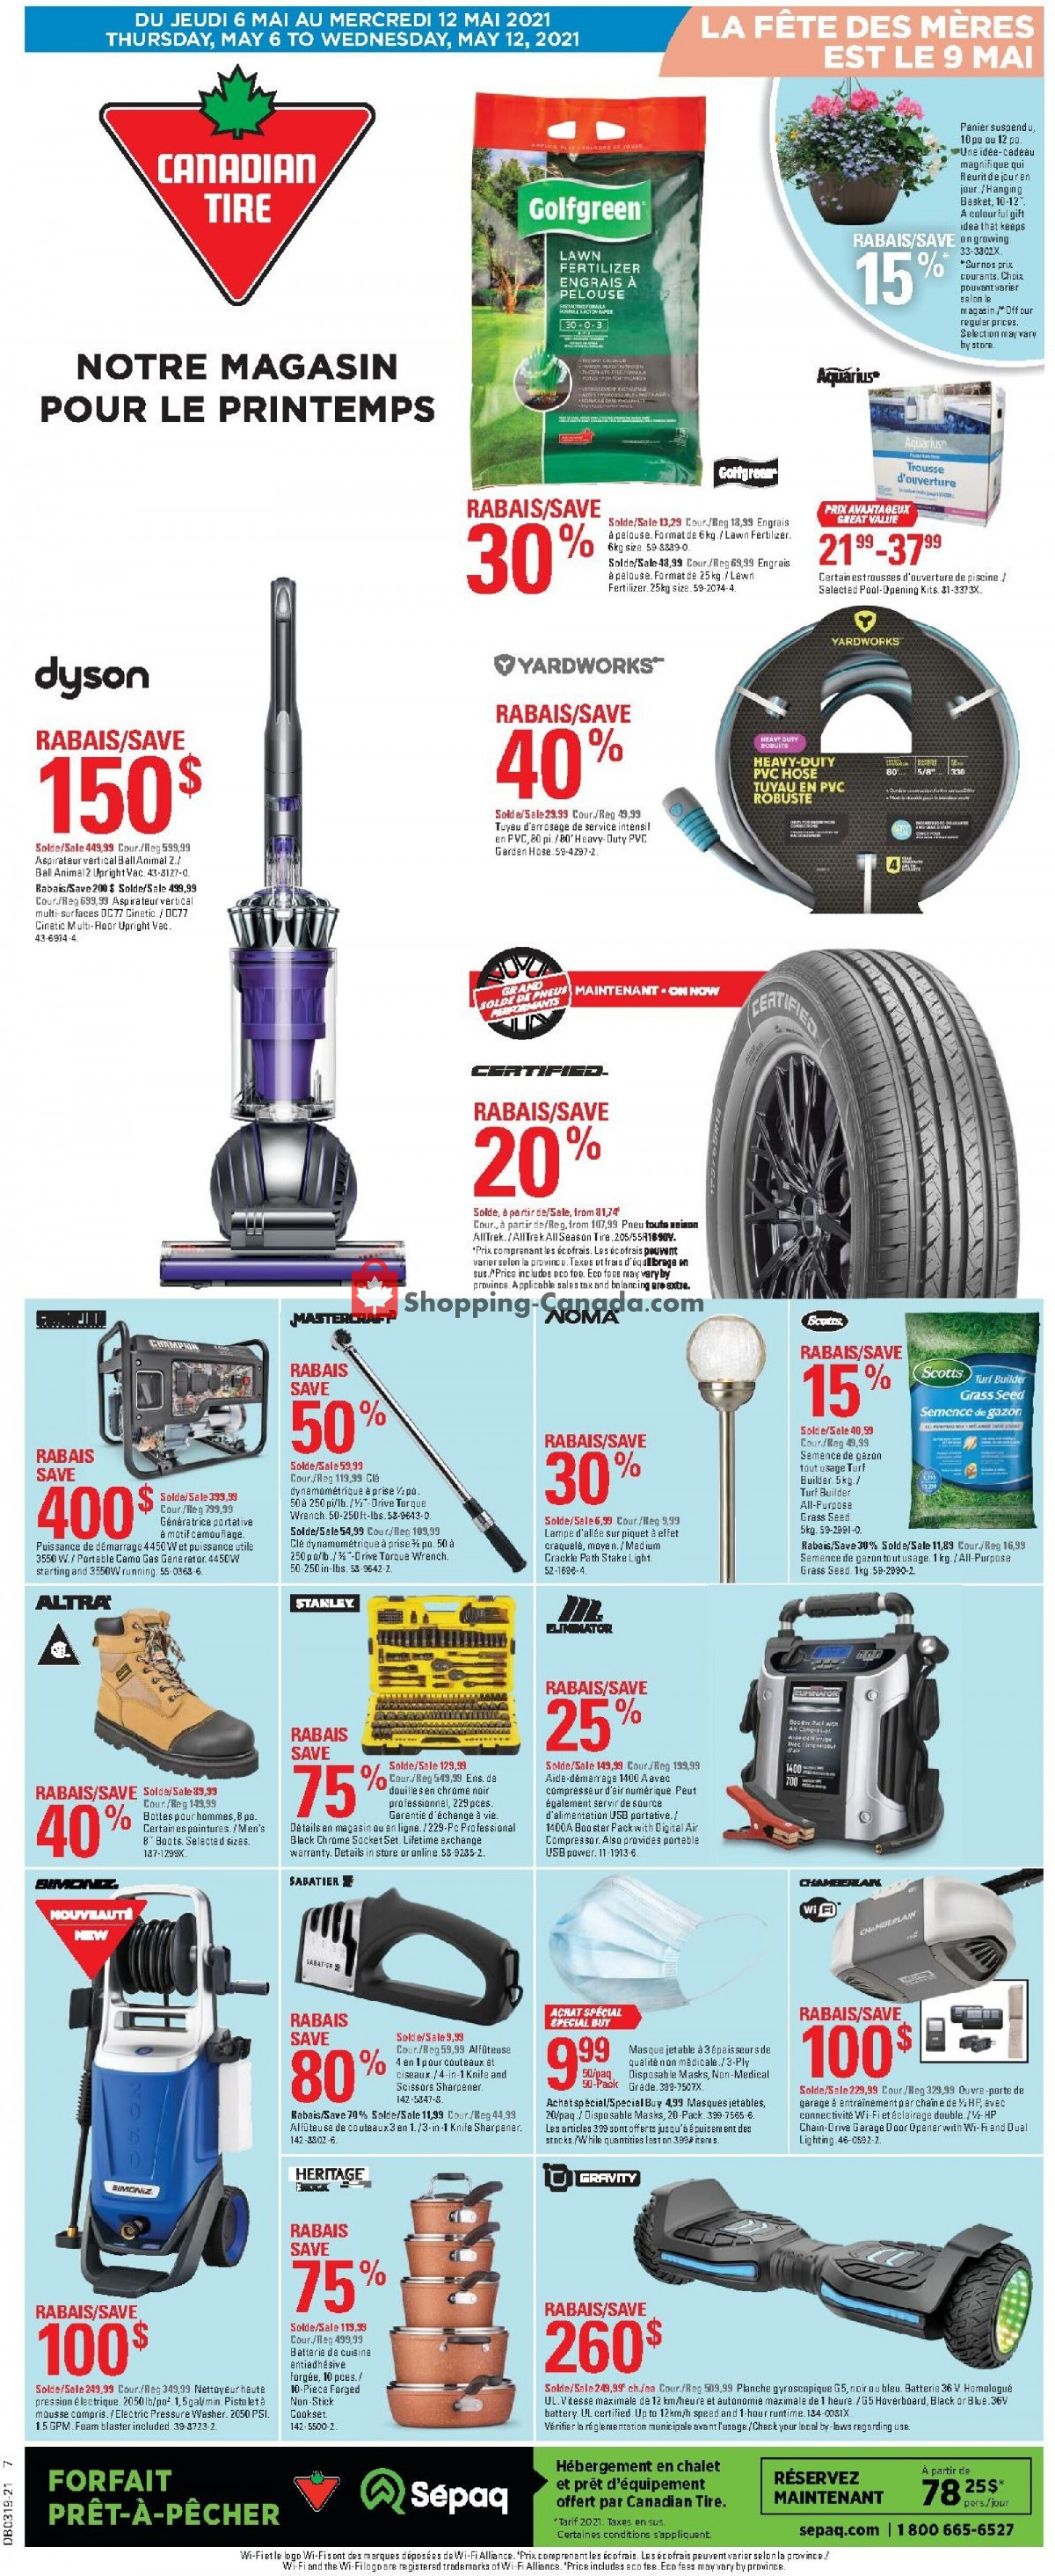 Flyer Canadian Tire Canada - from Thursday May 6, 2021 to Wednesday May 12, 2021